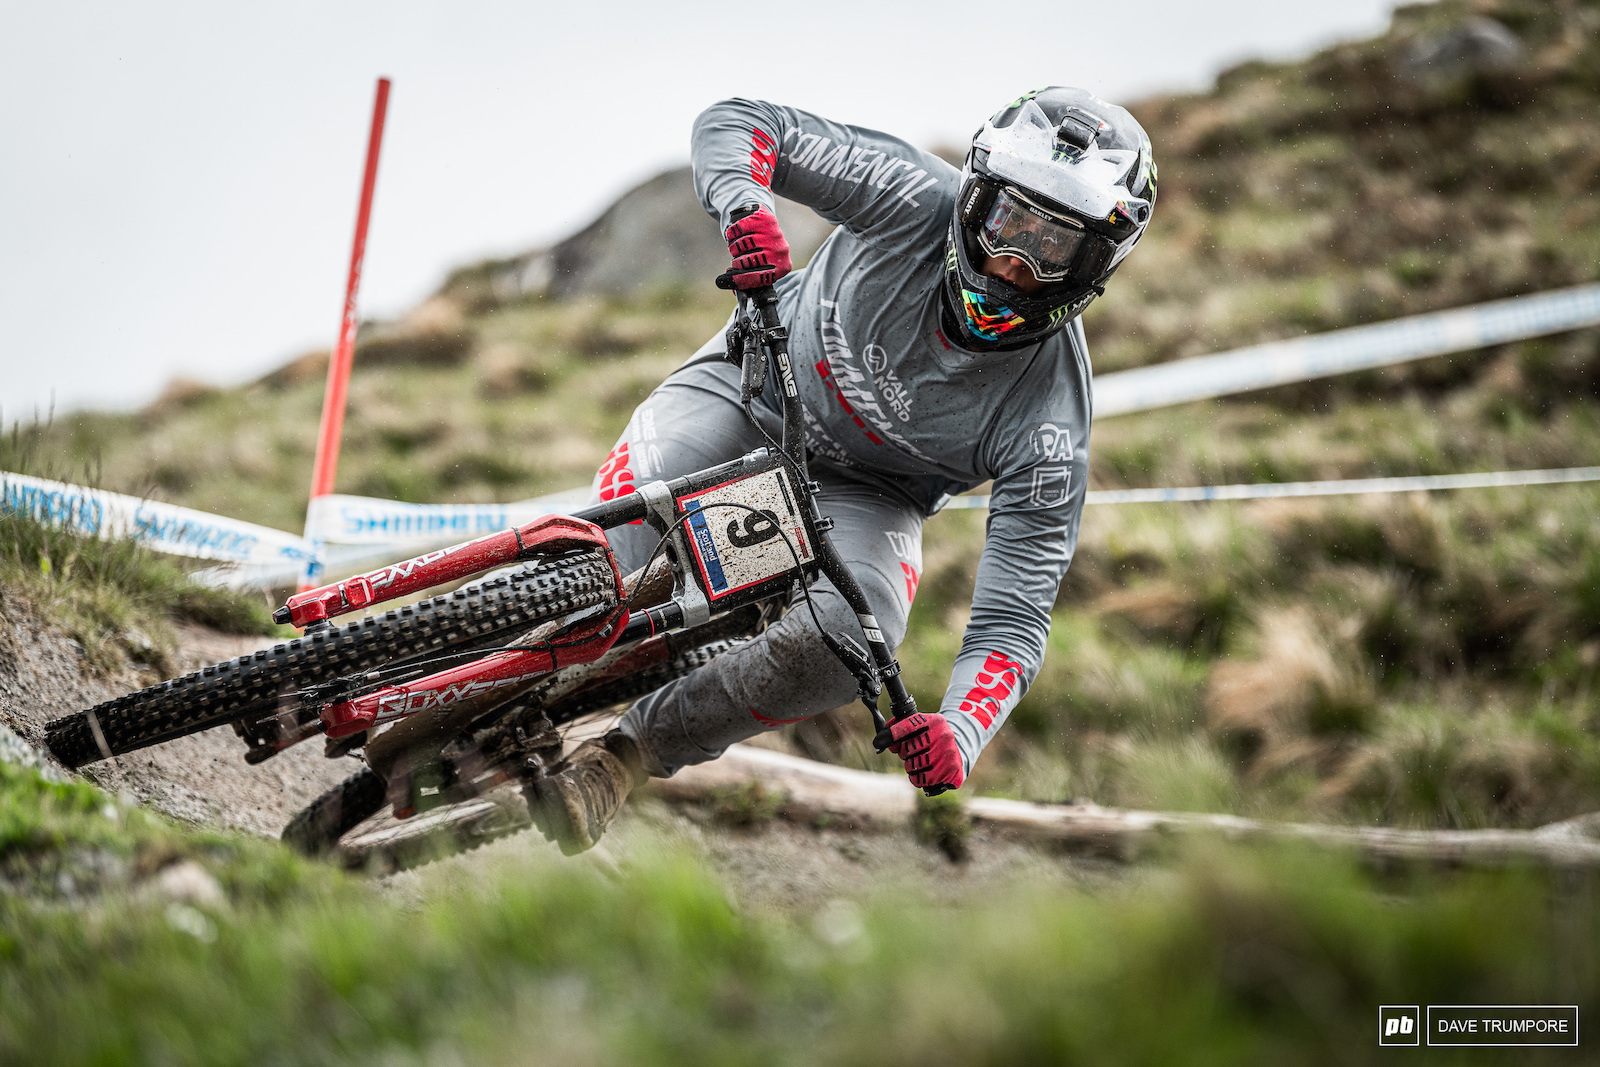 2nd on the day for Amaury Pierron on the track that saw him claim his first World Cup win just one year ago.